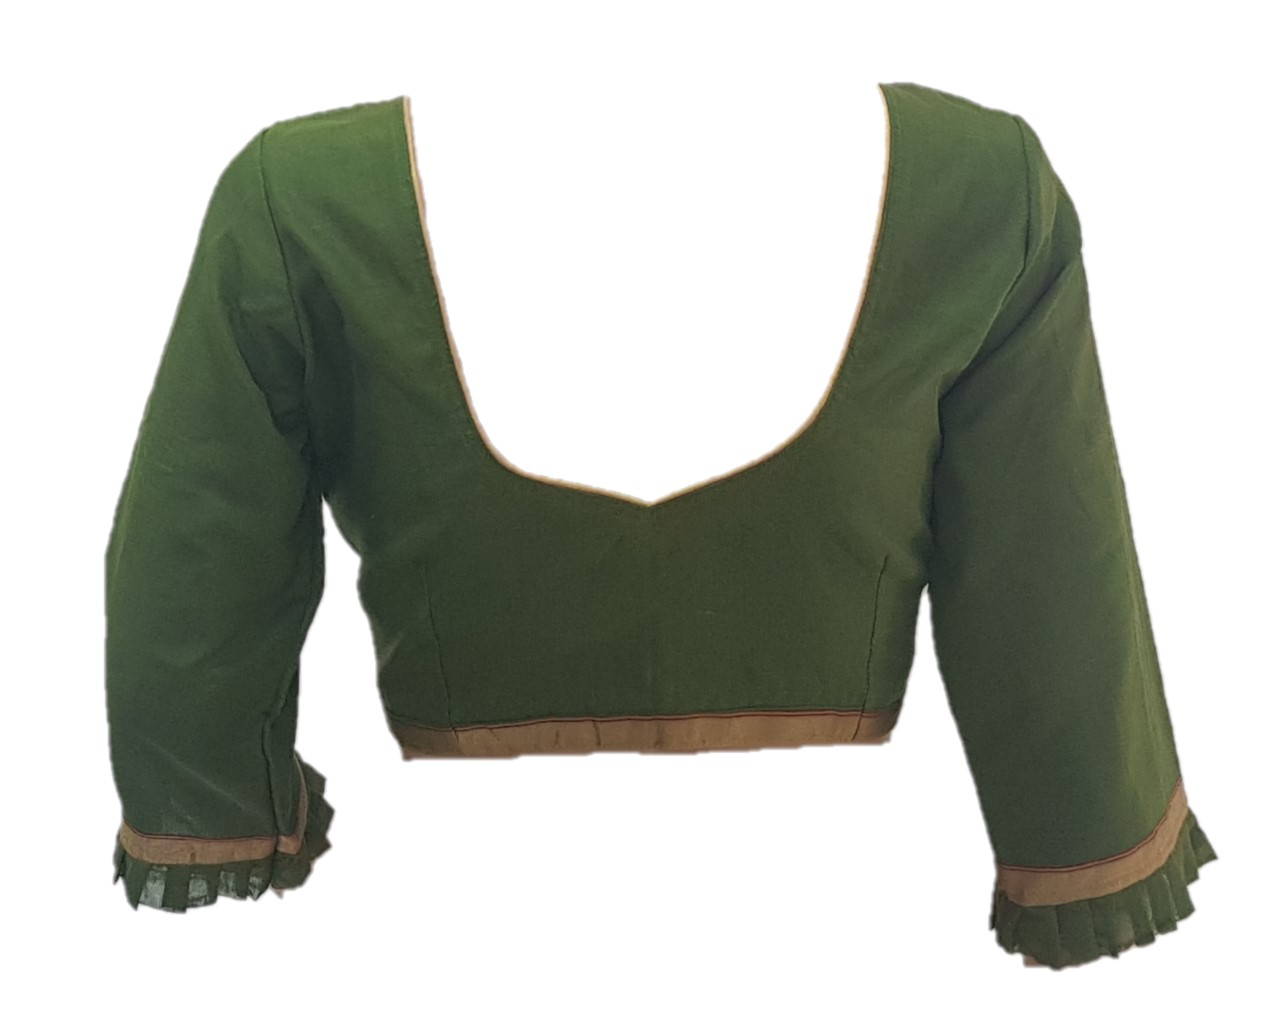 Chanderi Pure Silk Cotton Fabric Long Sleeves with Frills Readymade Saree Blouse Mehendi Green Size Medium : Picture